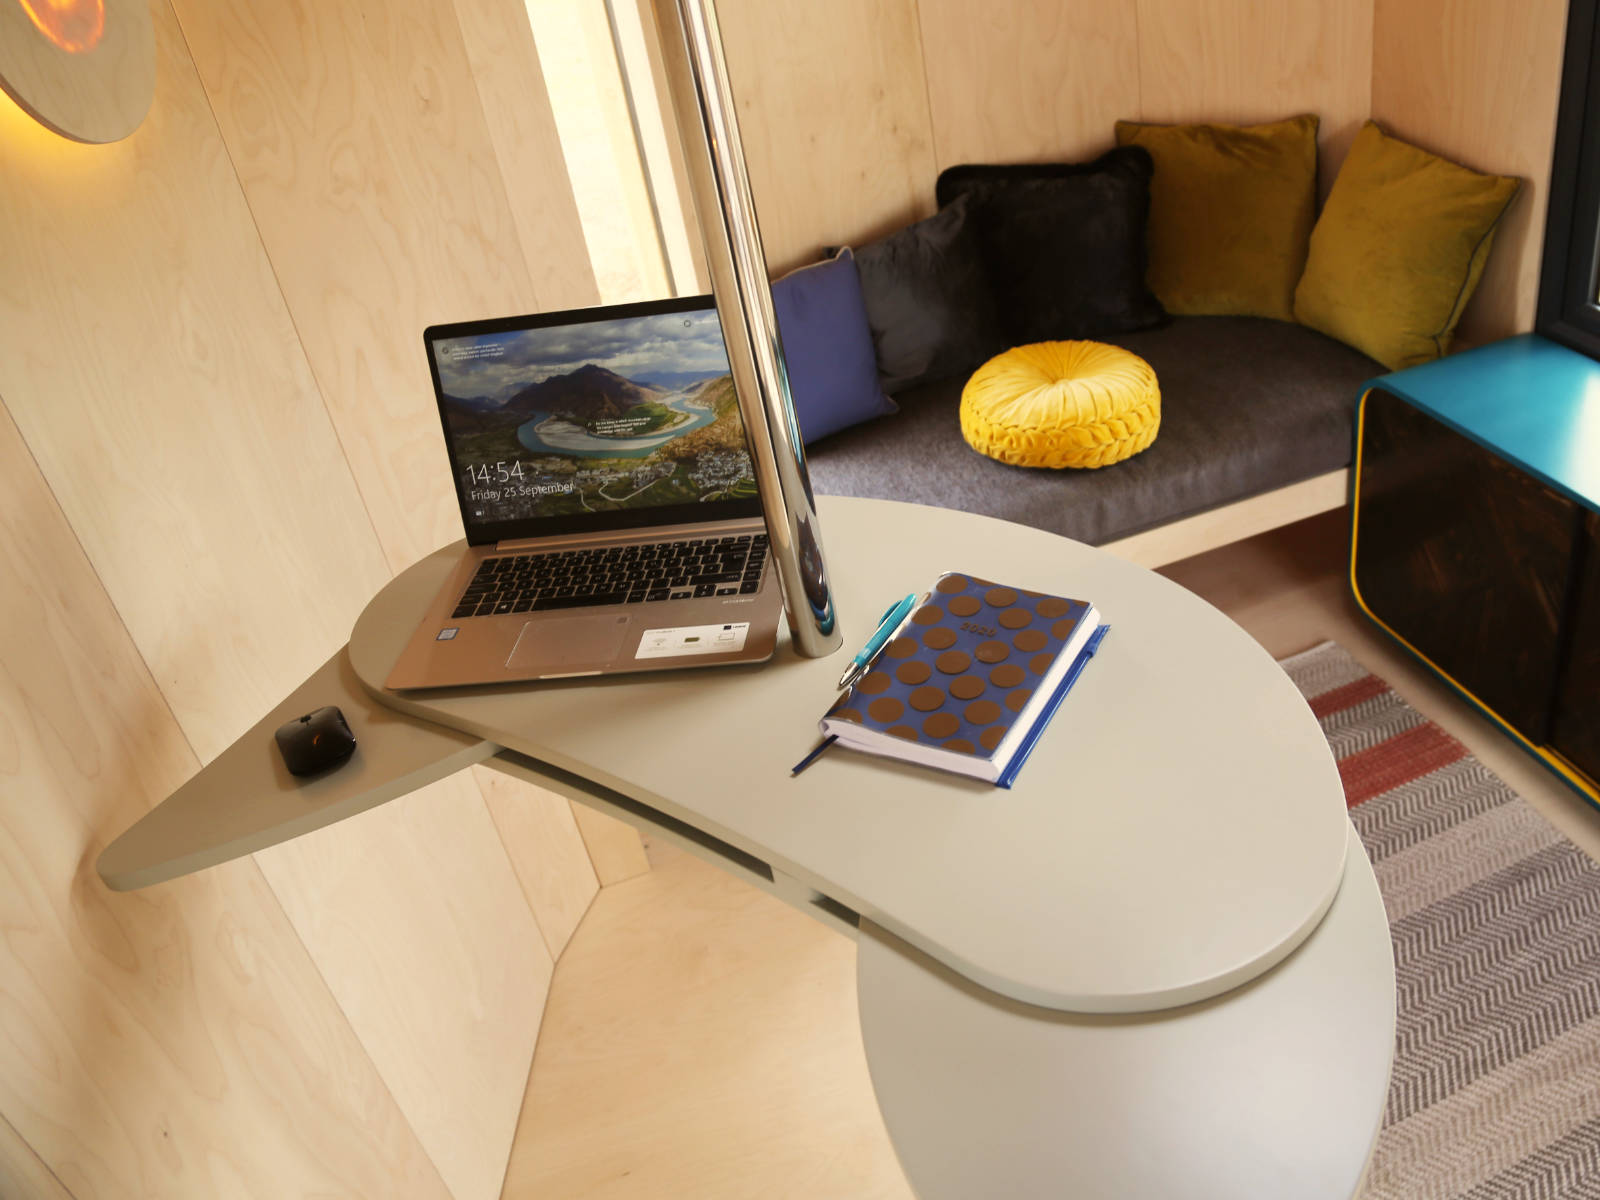 ergonomic furniture, healthy working, healthy body position, transformable desk